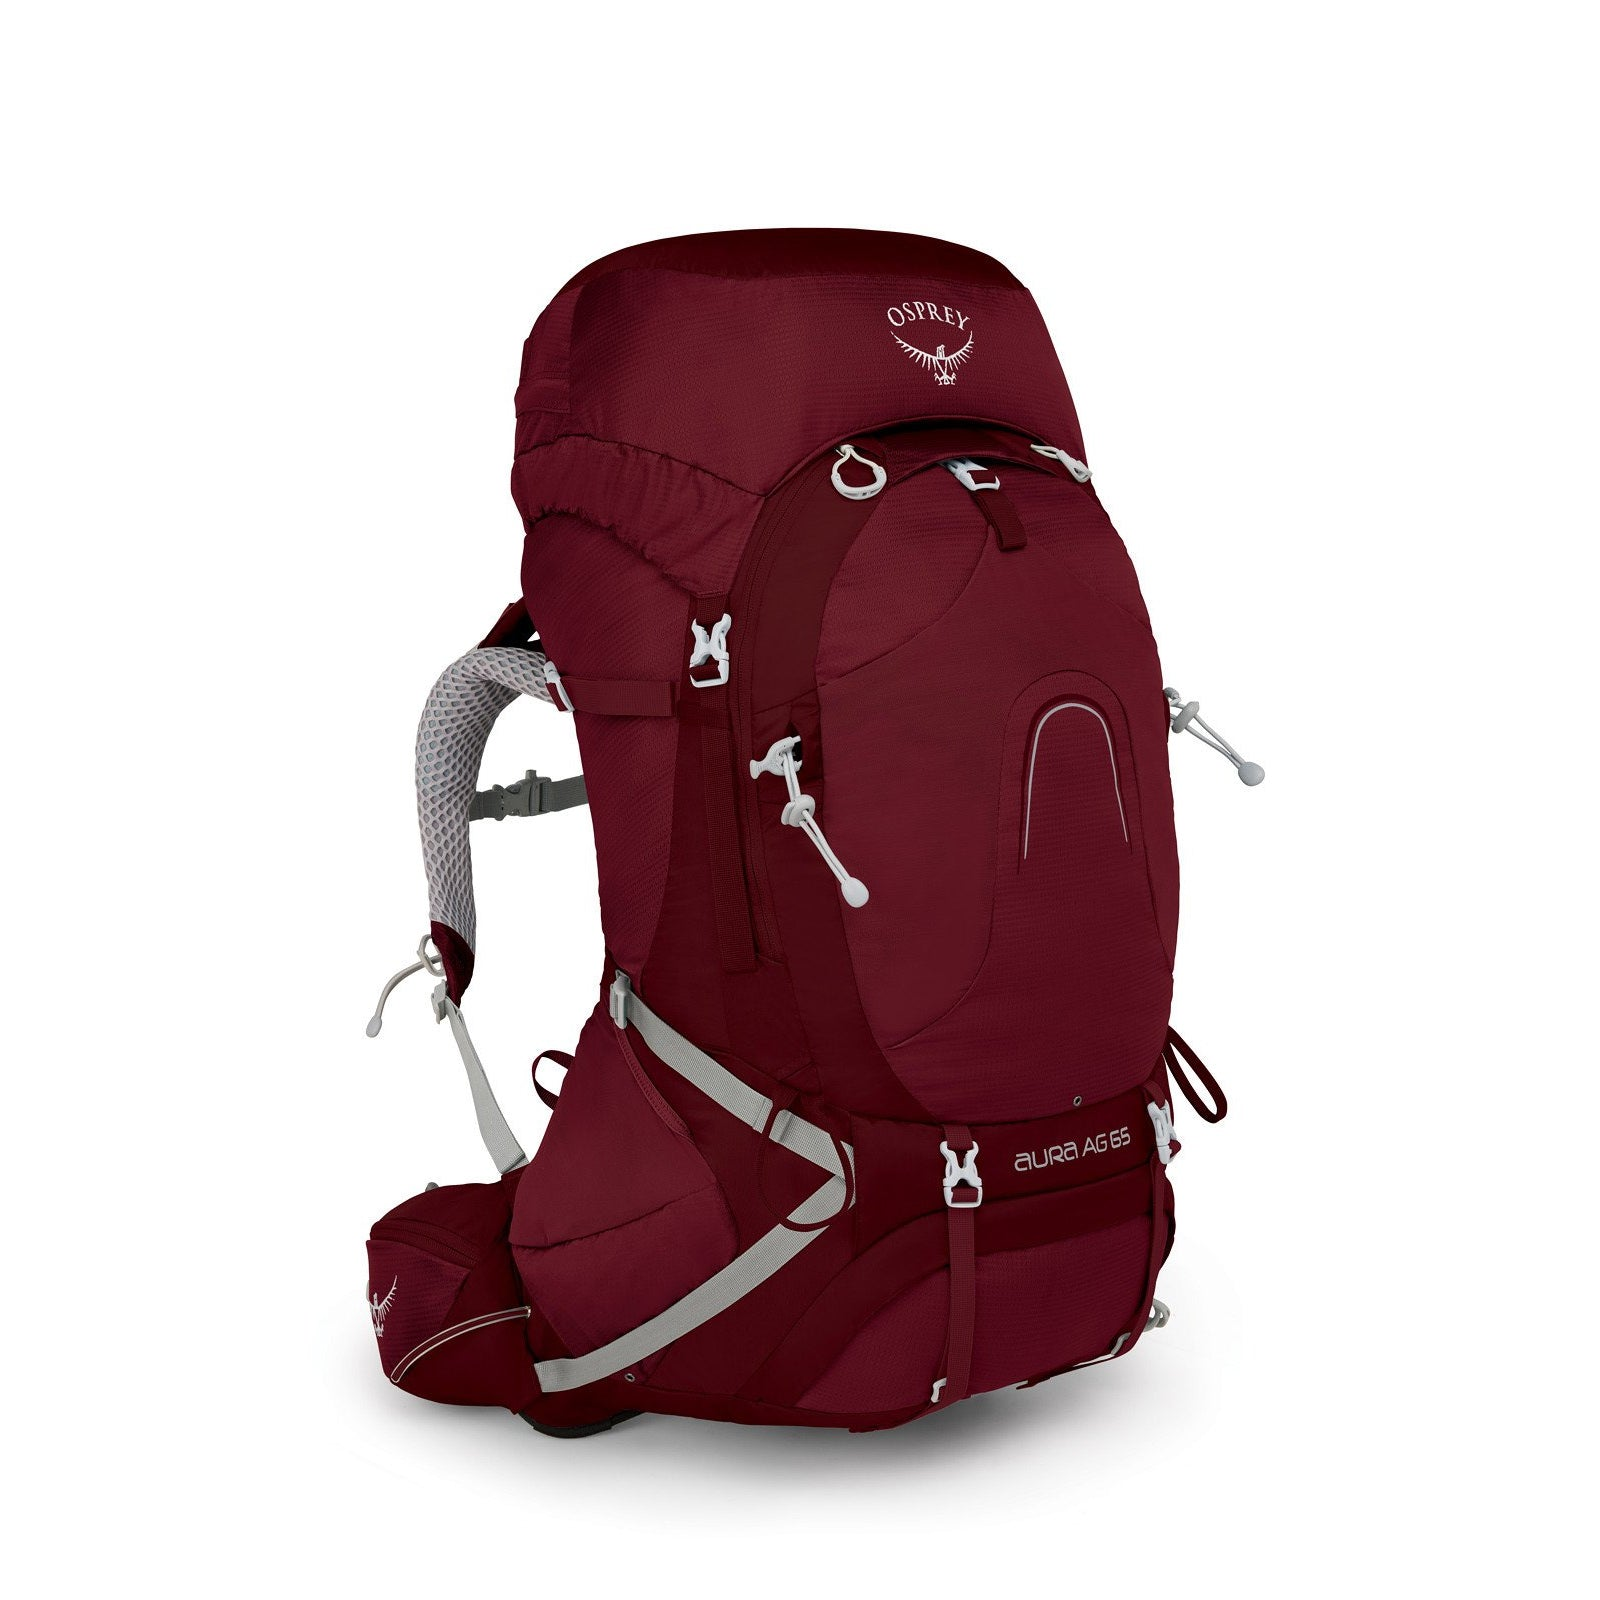 Osprey Aura 65 Anti-Gravity Women's Backpack